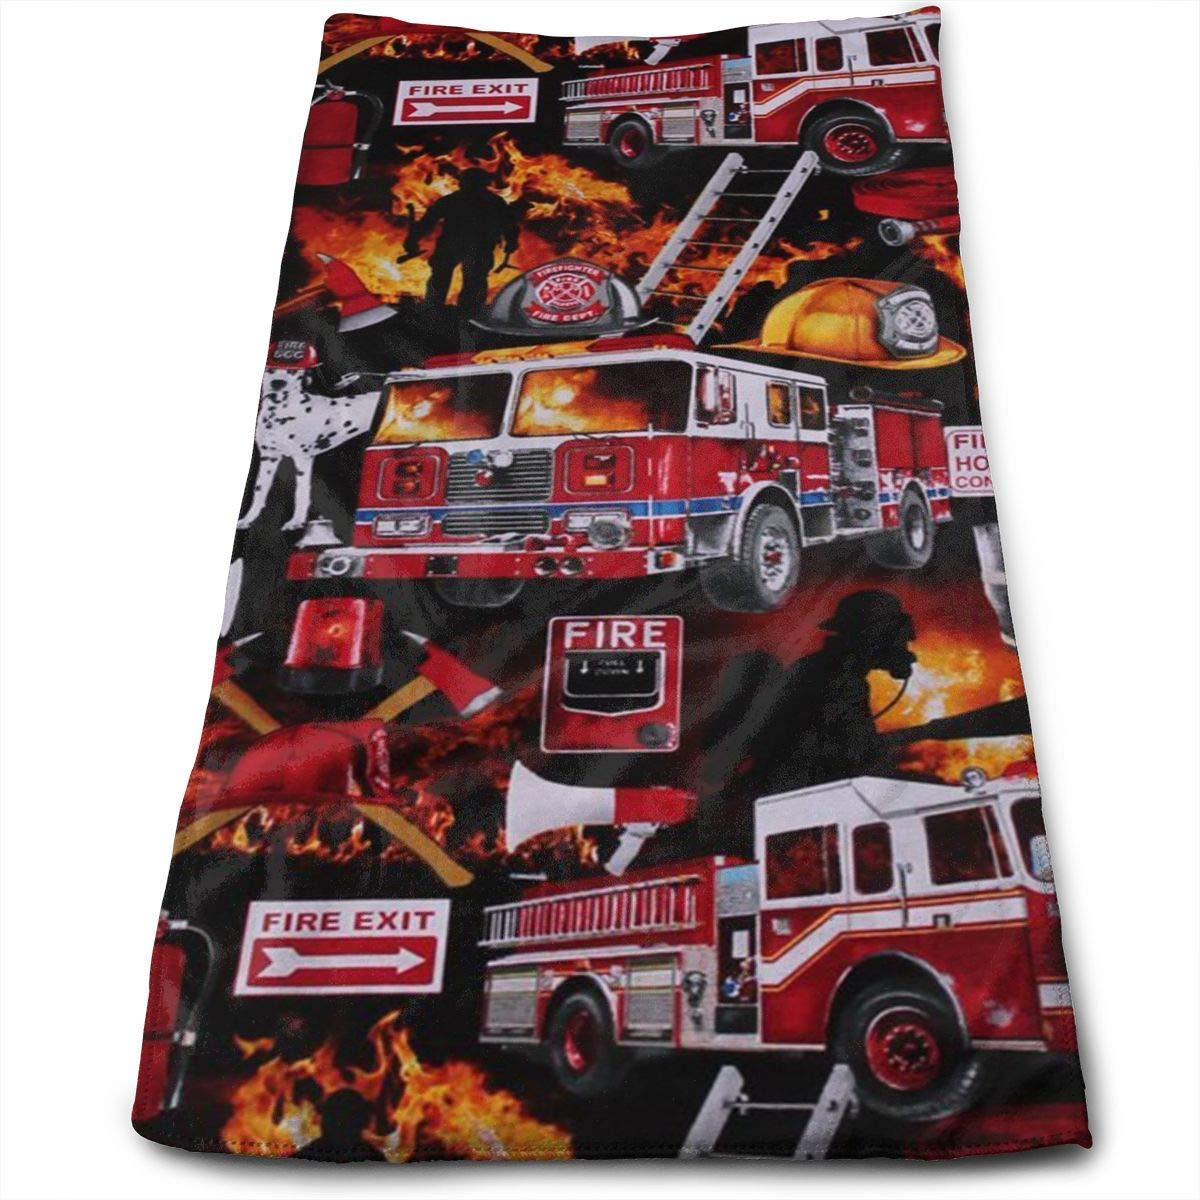 Dog Firefighters Soft Cotton Large Hand Towel- Multipurpose Bathroom Towels for Hand, Face, Gym and Spa Shower Curtain pillow